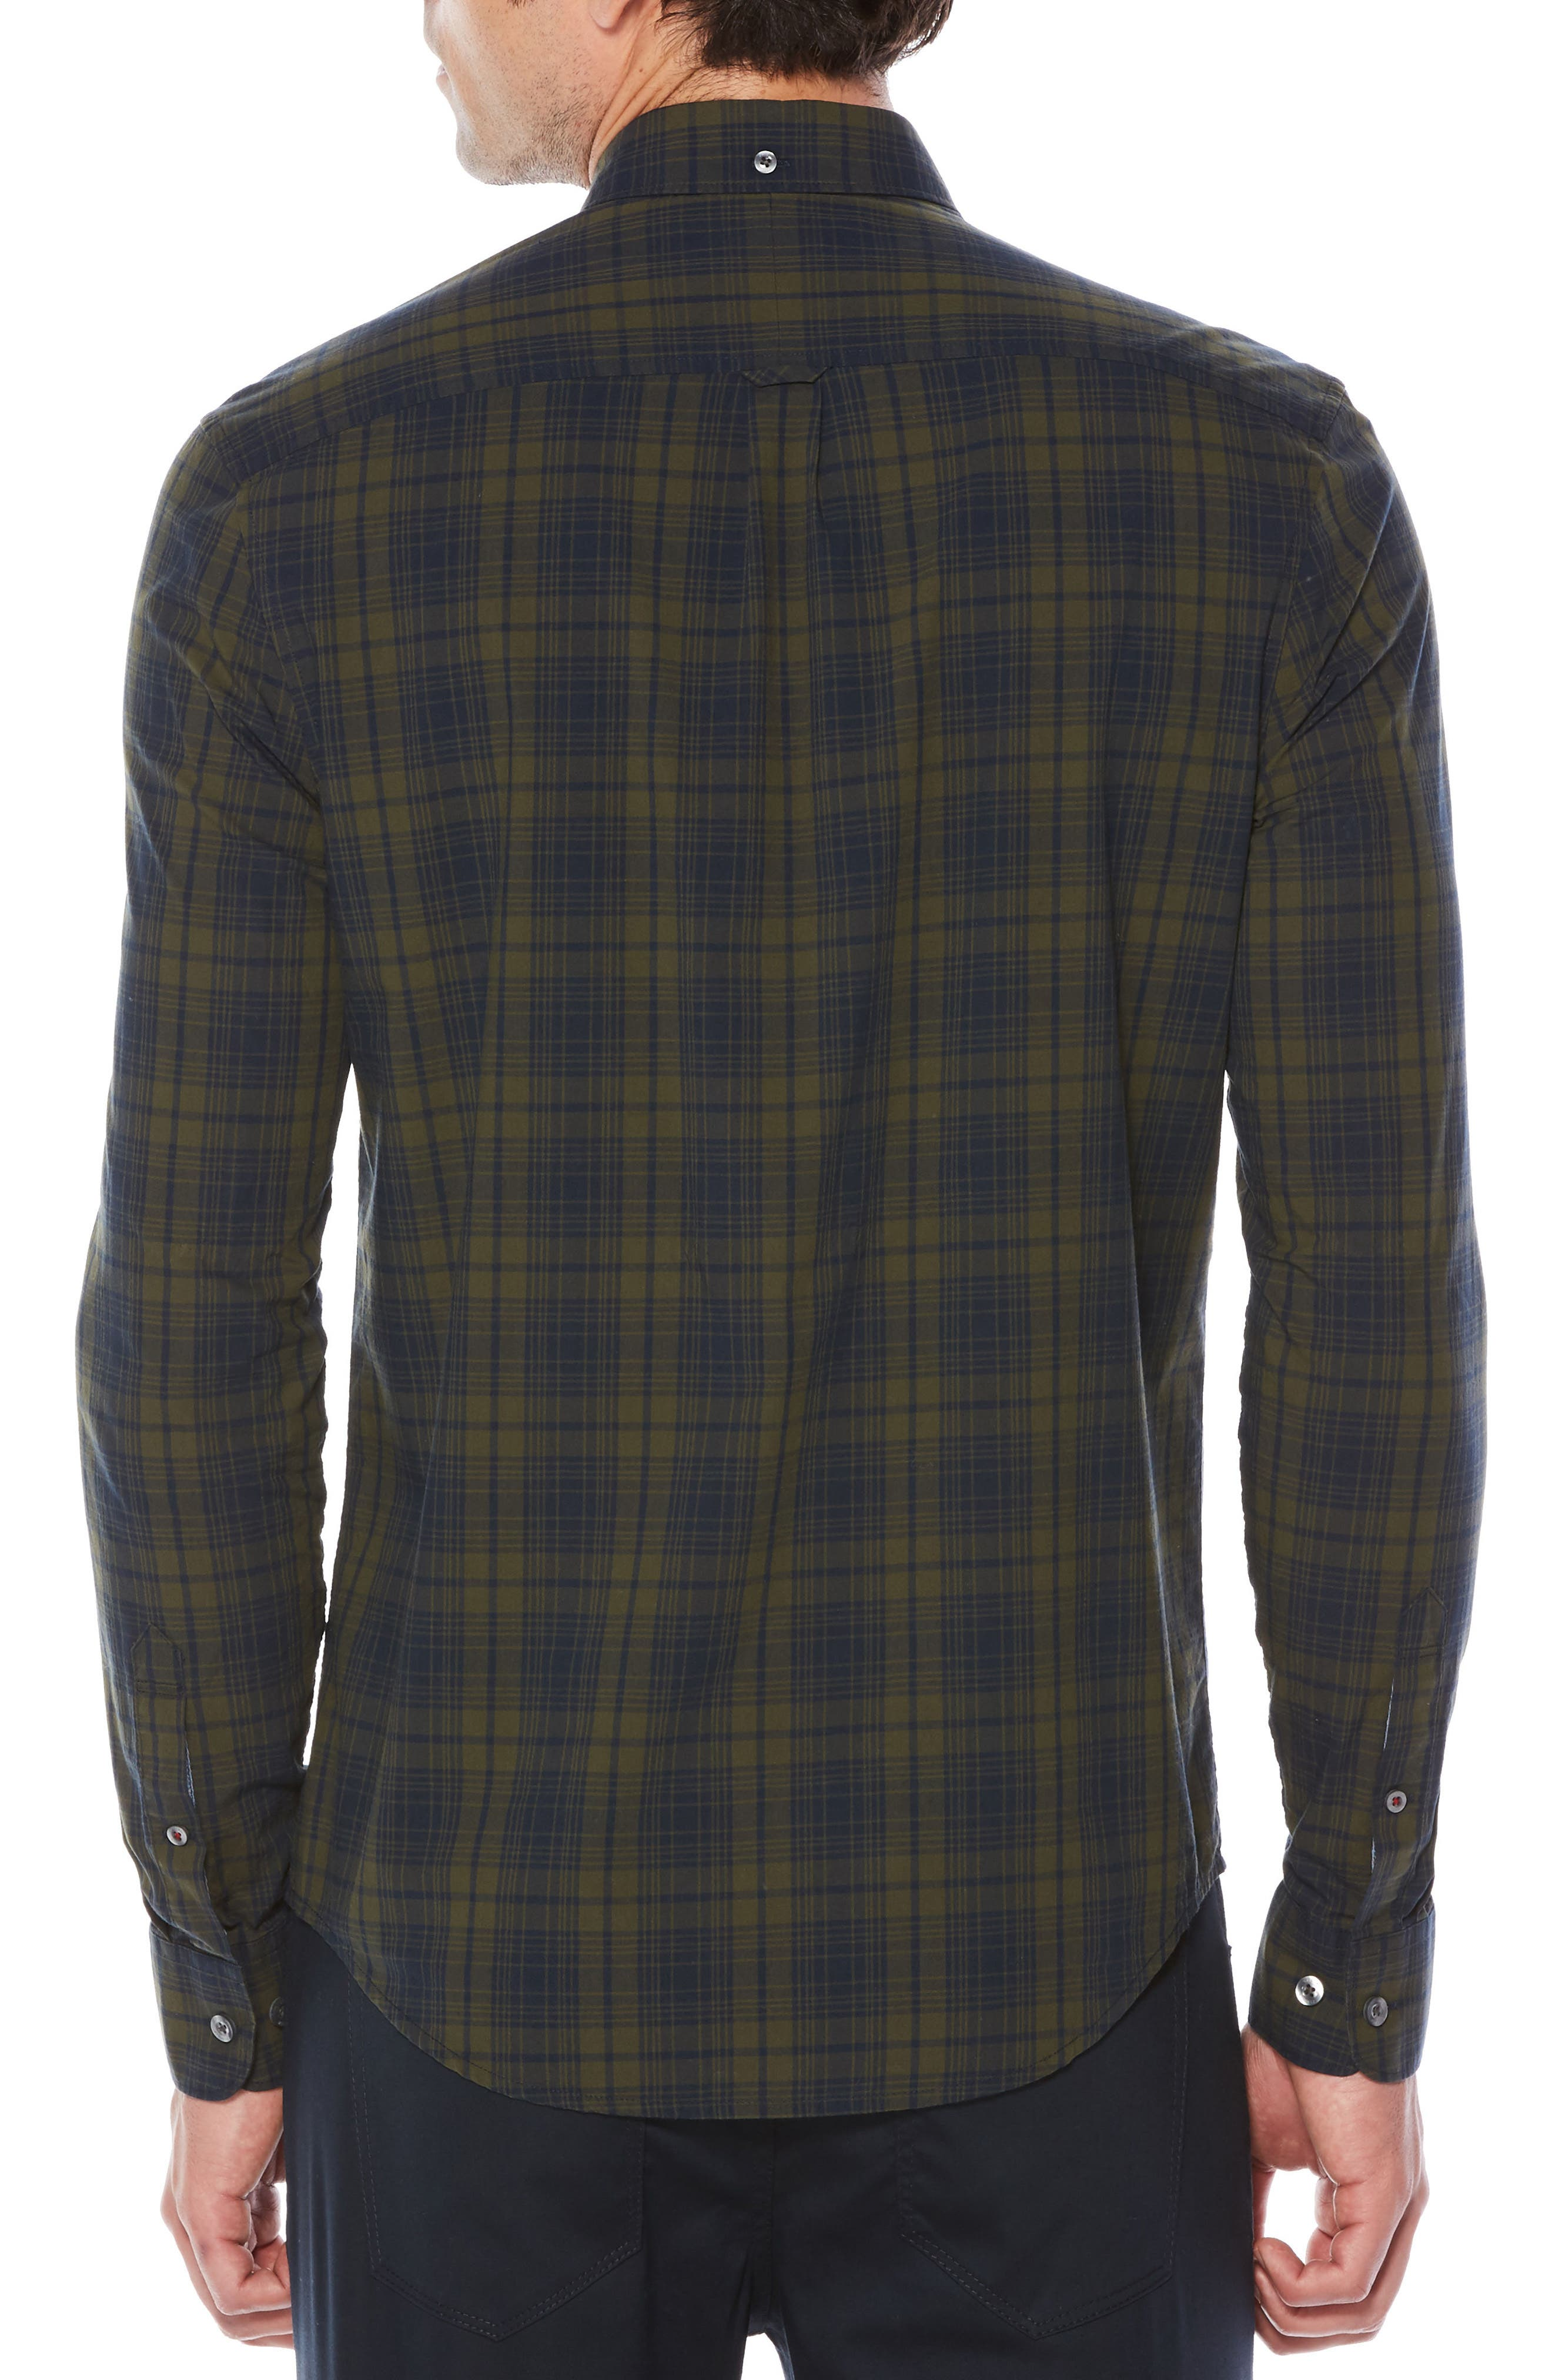 Heritage Slim Fit Plaid Shirt,                             Alternate thumbnail 2, color,                             Forest Night